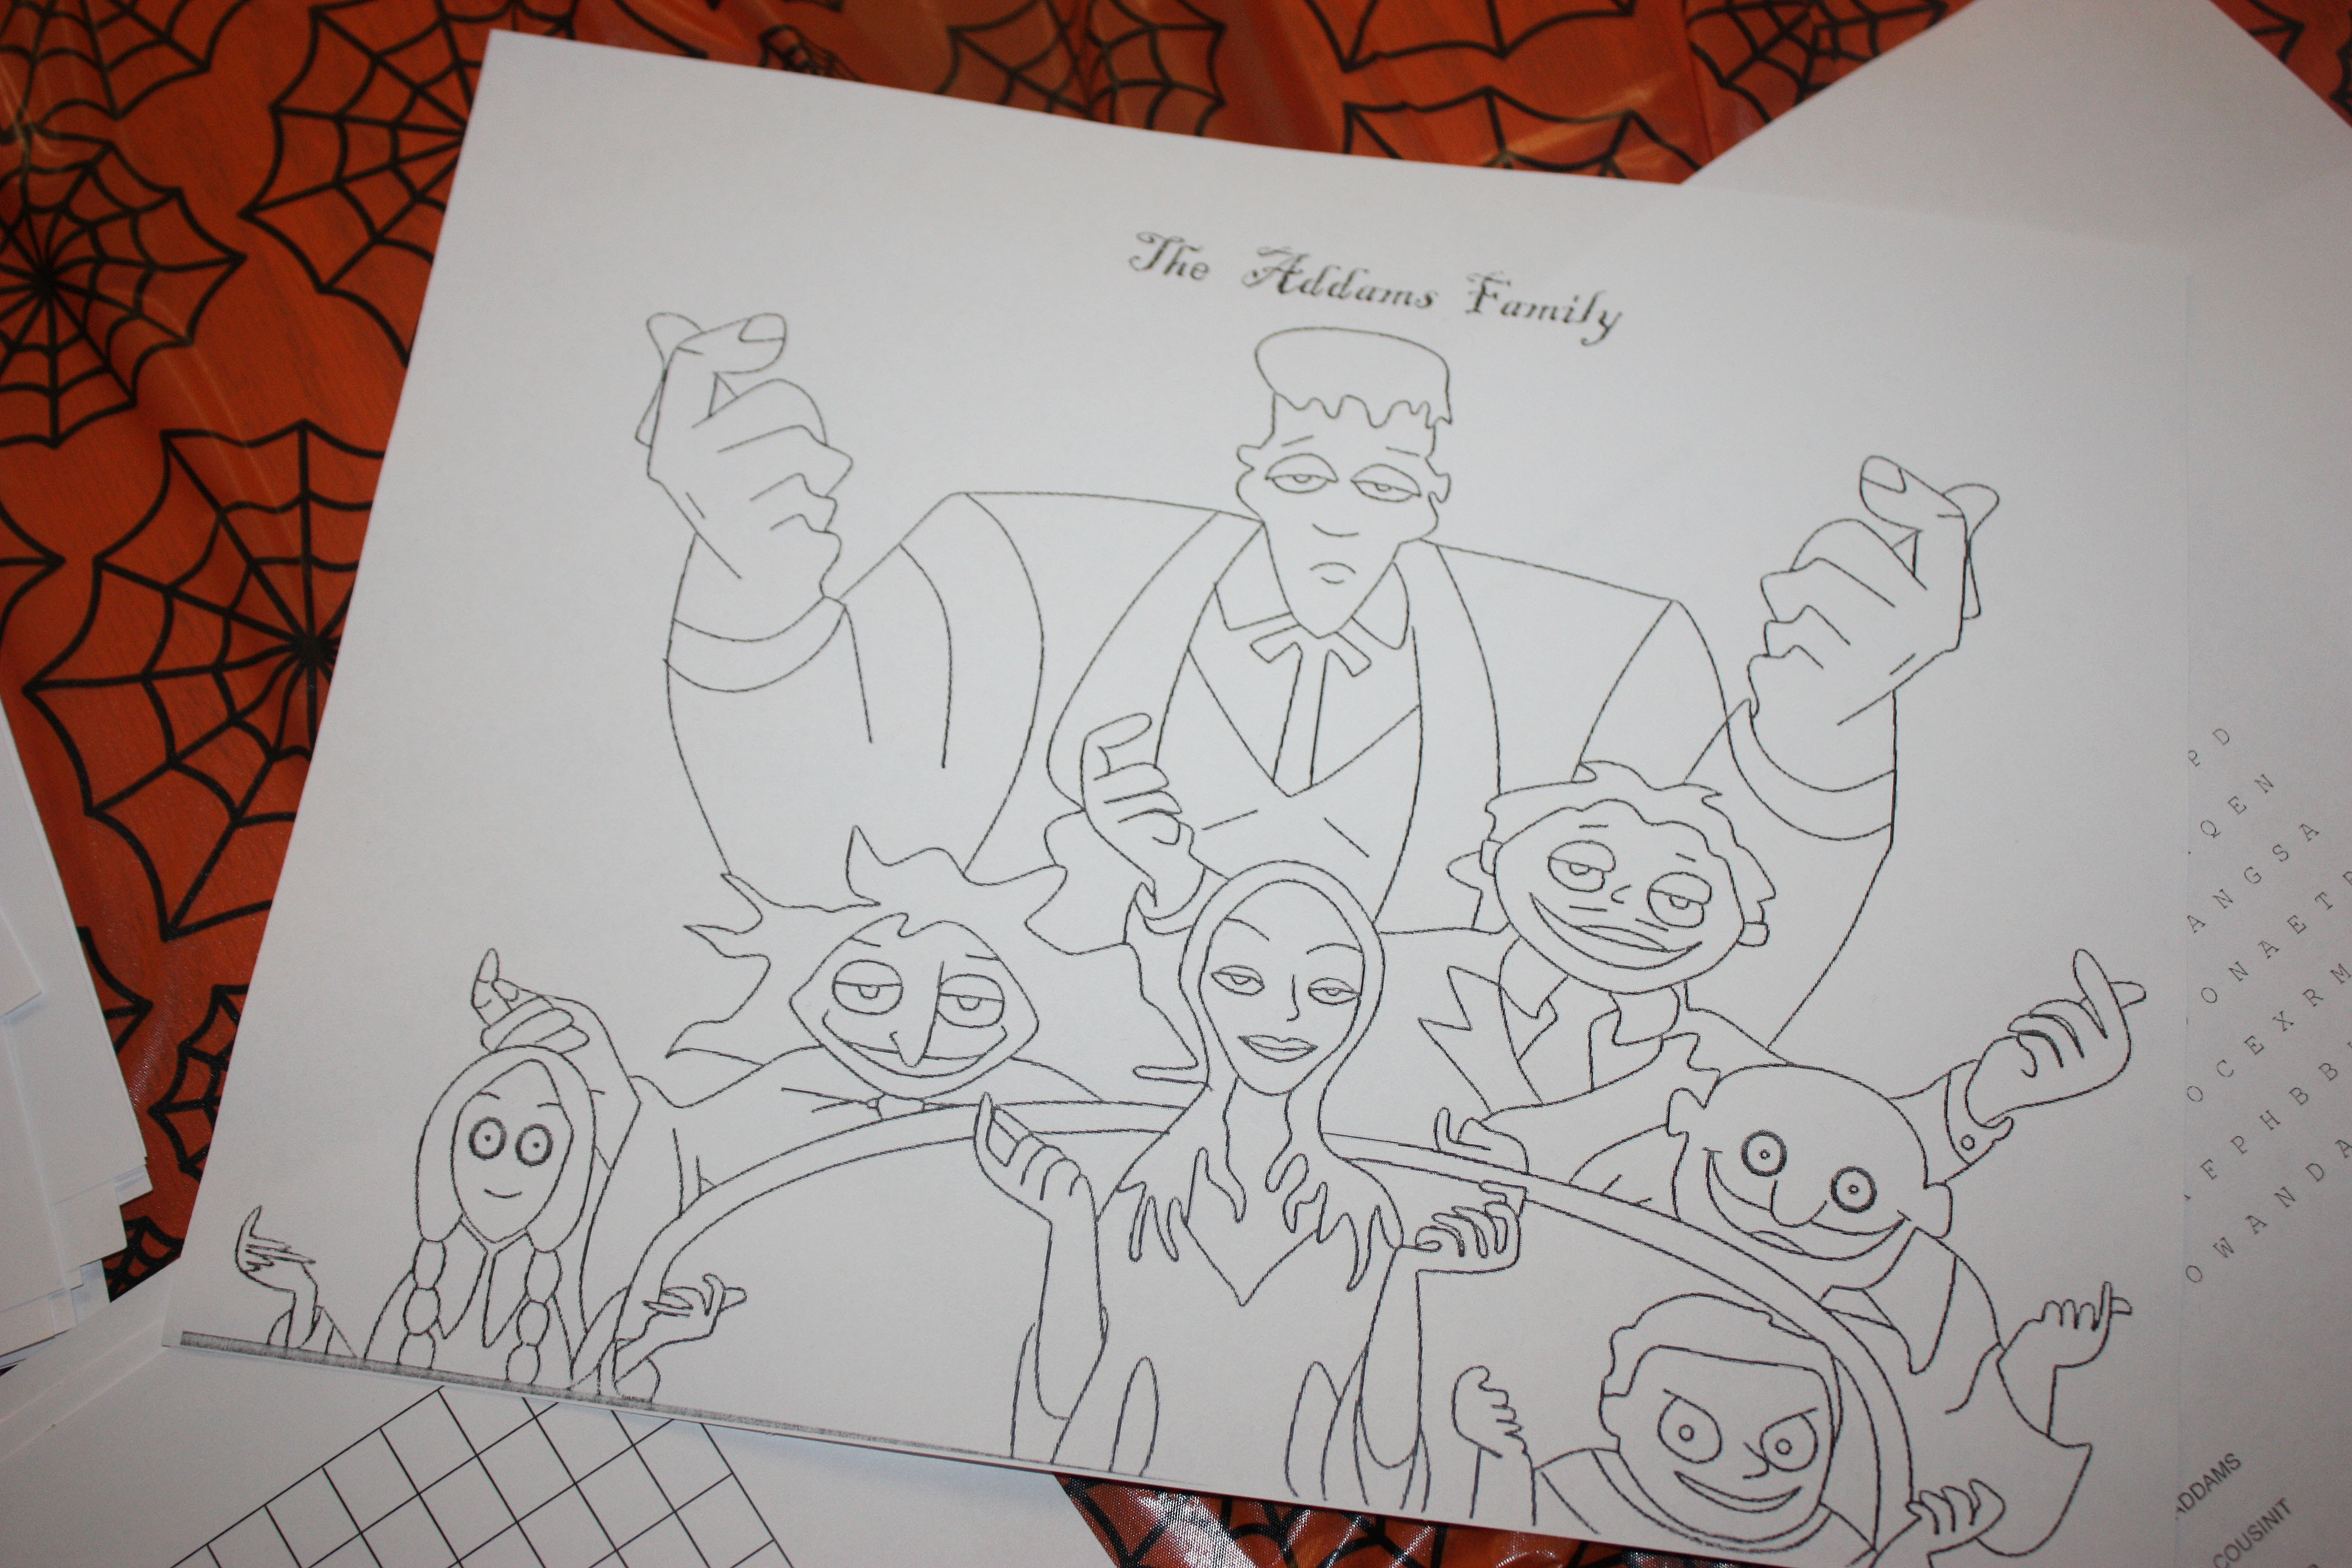 Addams Family Movie Coloring Pages - colouring mermaid